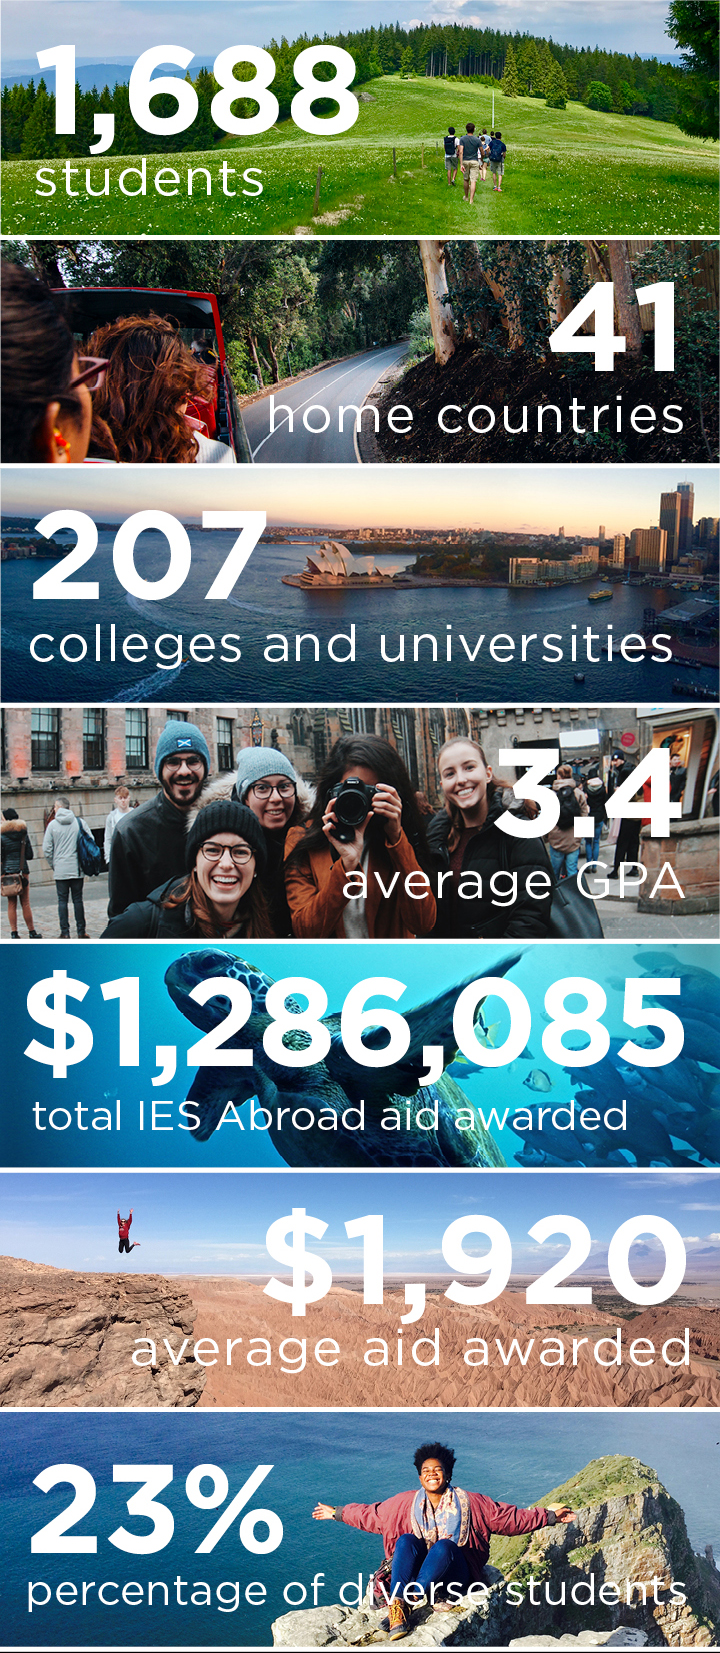 infographic of student information for IES Abroad's Fall 2017 student body